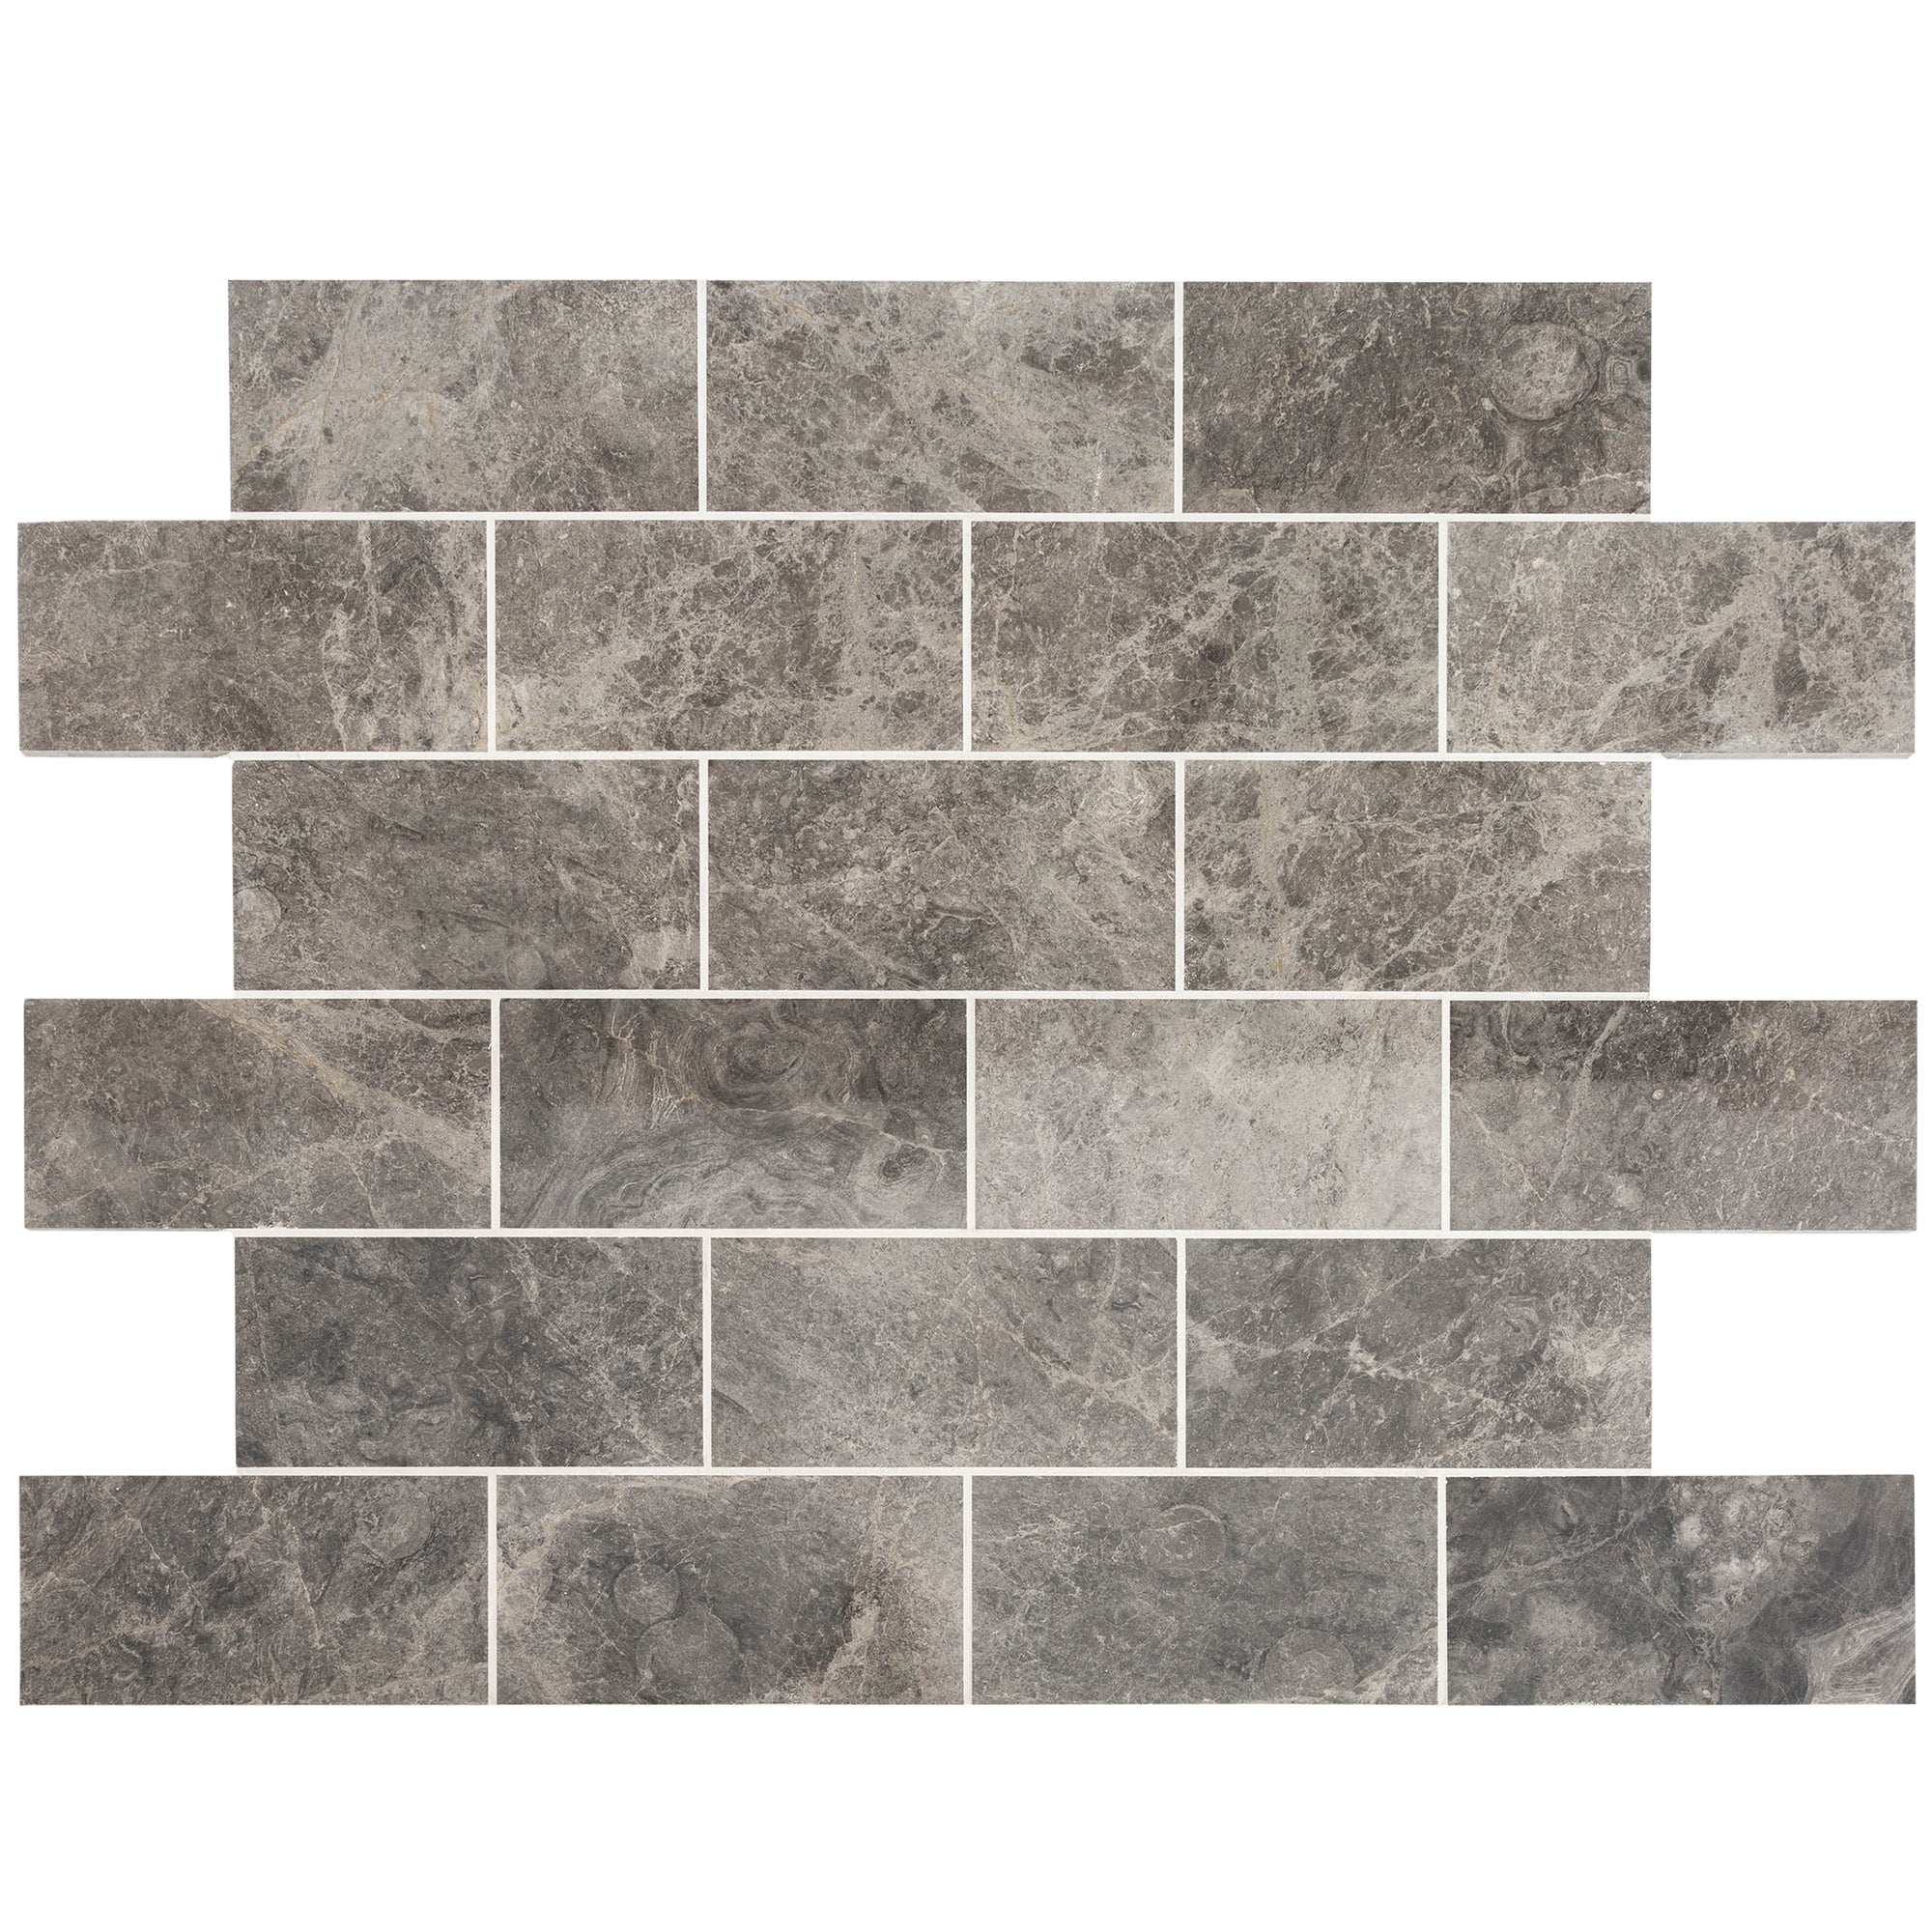 Buy Tundra Blue Marble Tiles 18x36x34 Online At Best Price In